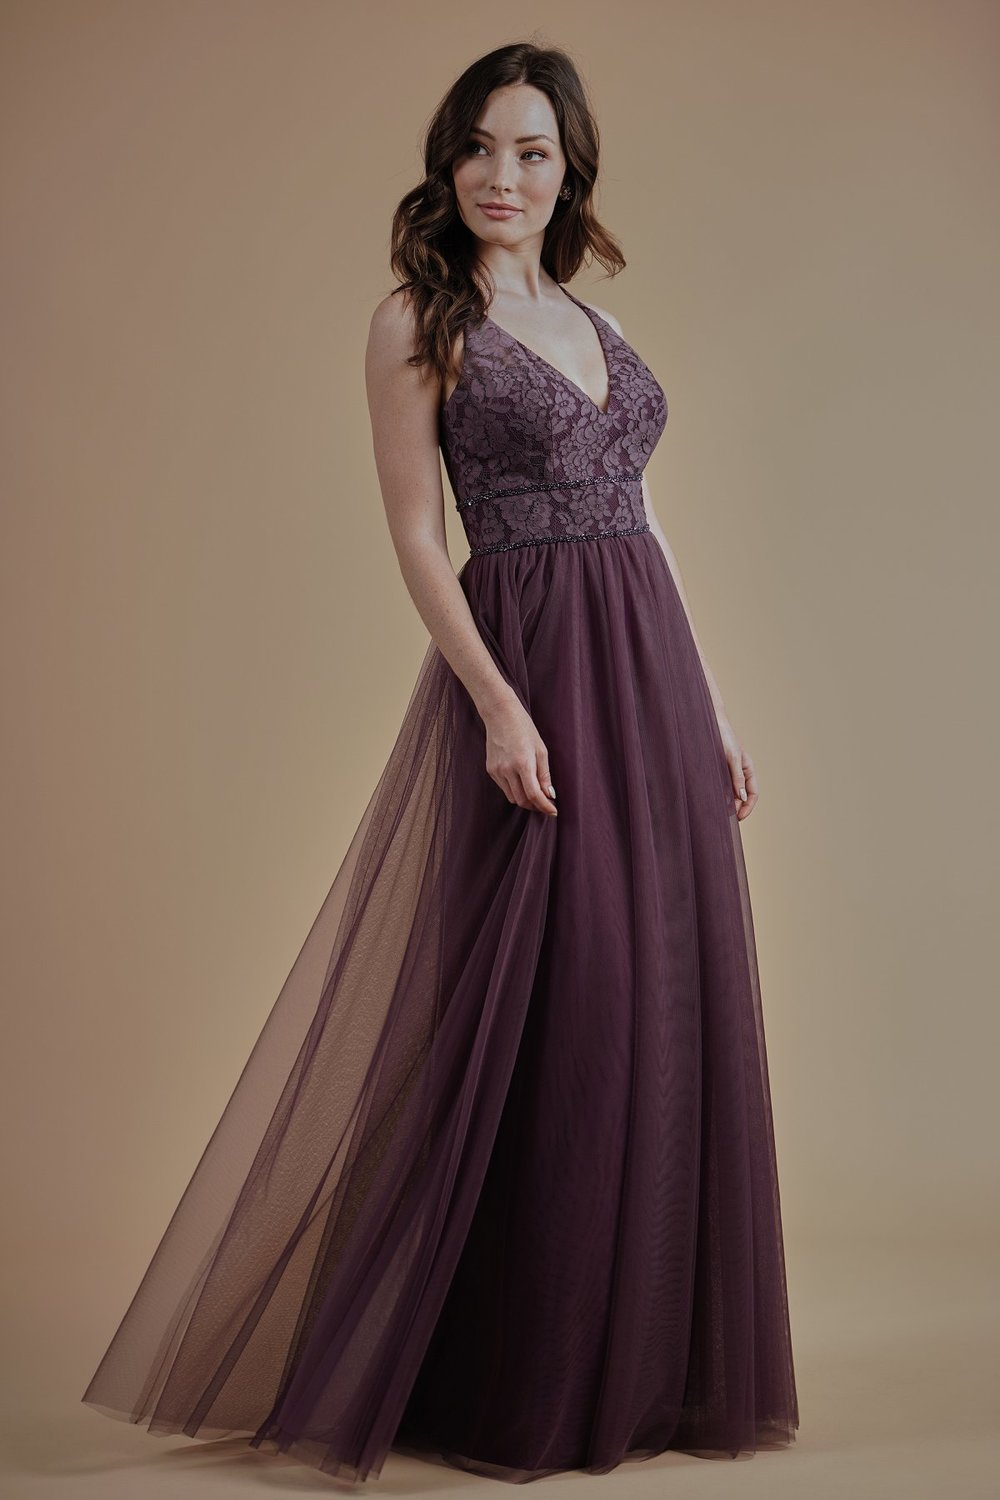 L214008 -  Beautiful lace and soft tulle floor length bridesmaid dress with a flattering V-neckline. Detailed beading on the bodice and a flowy skirt.    Available in 17 colors